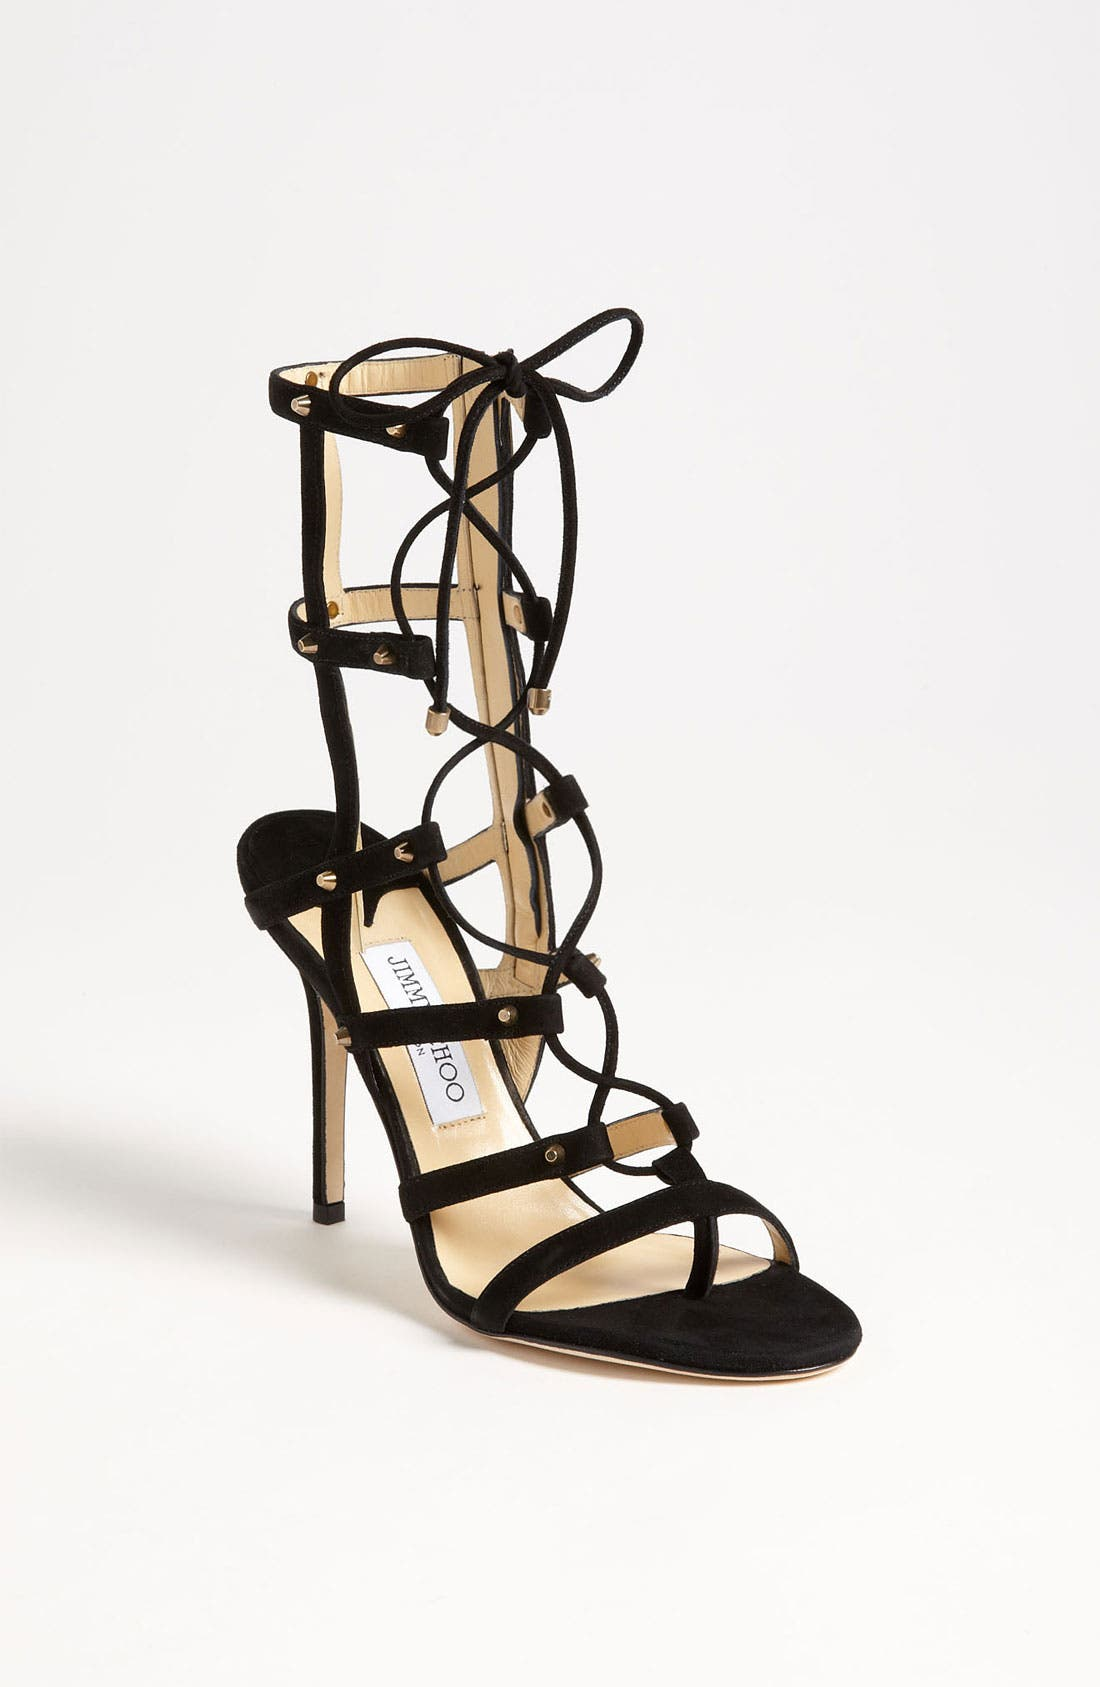 Main Image - Jimmy Choo 'Meddle' Caged Sandal